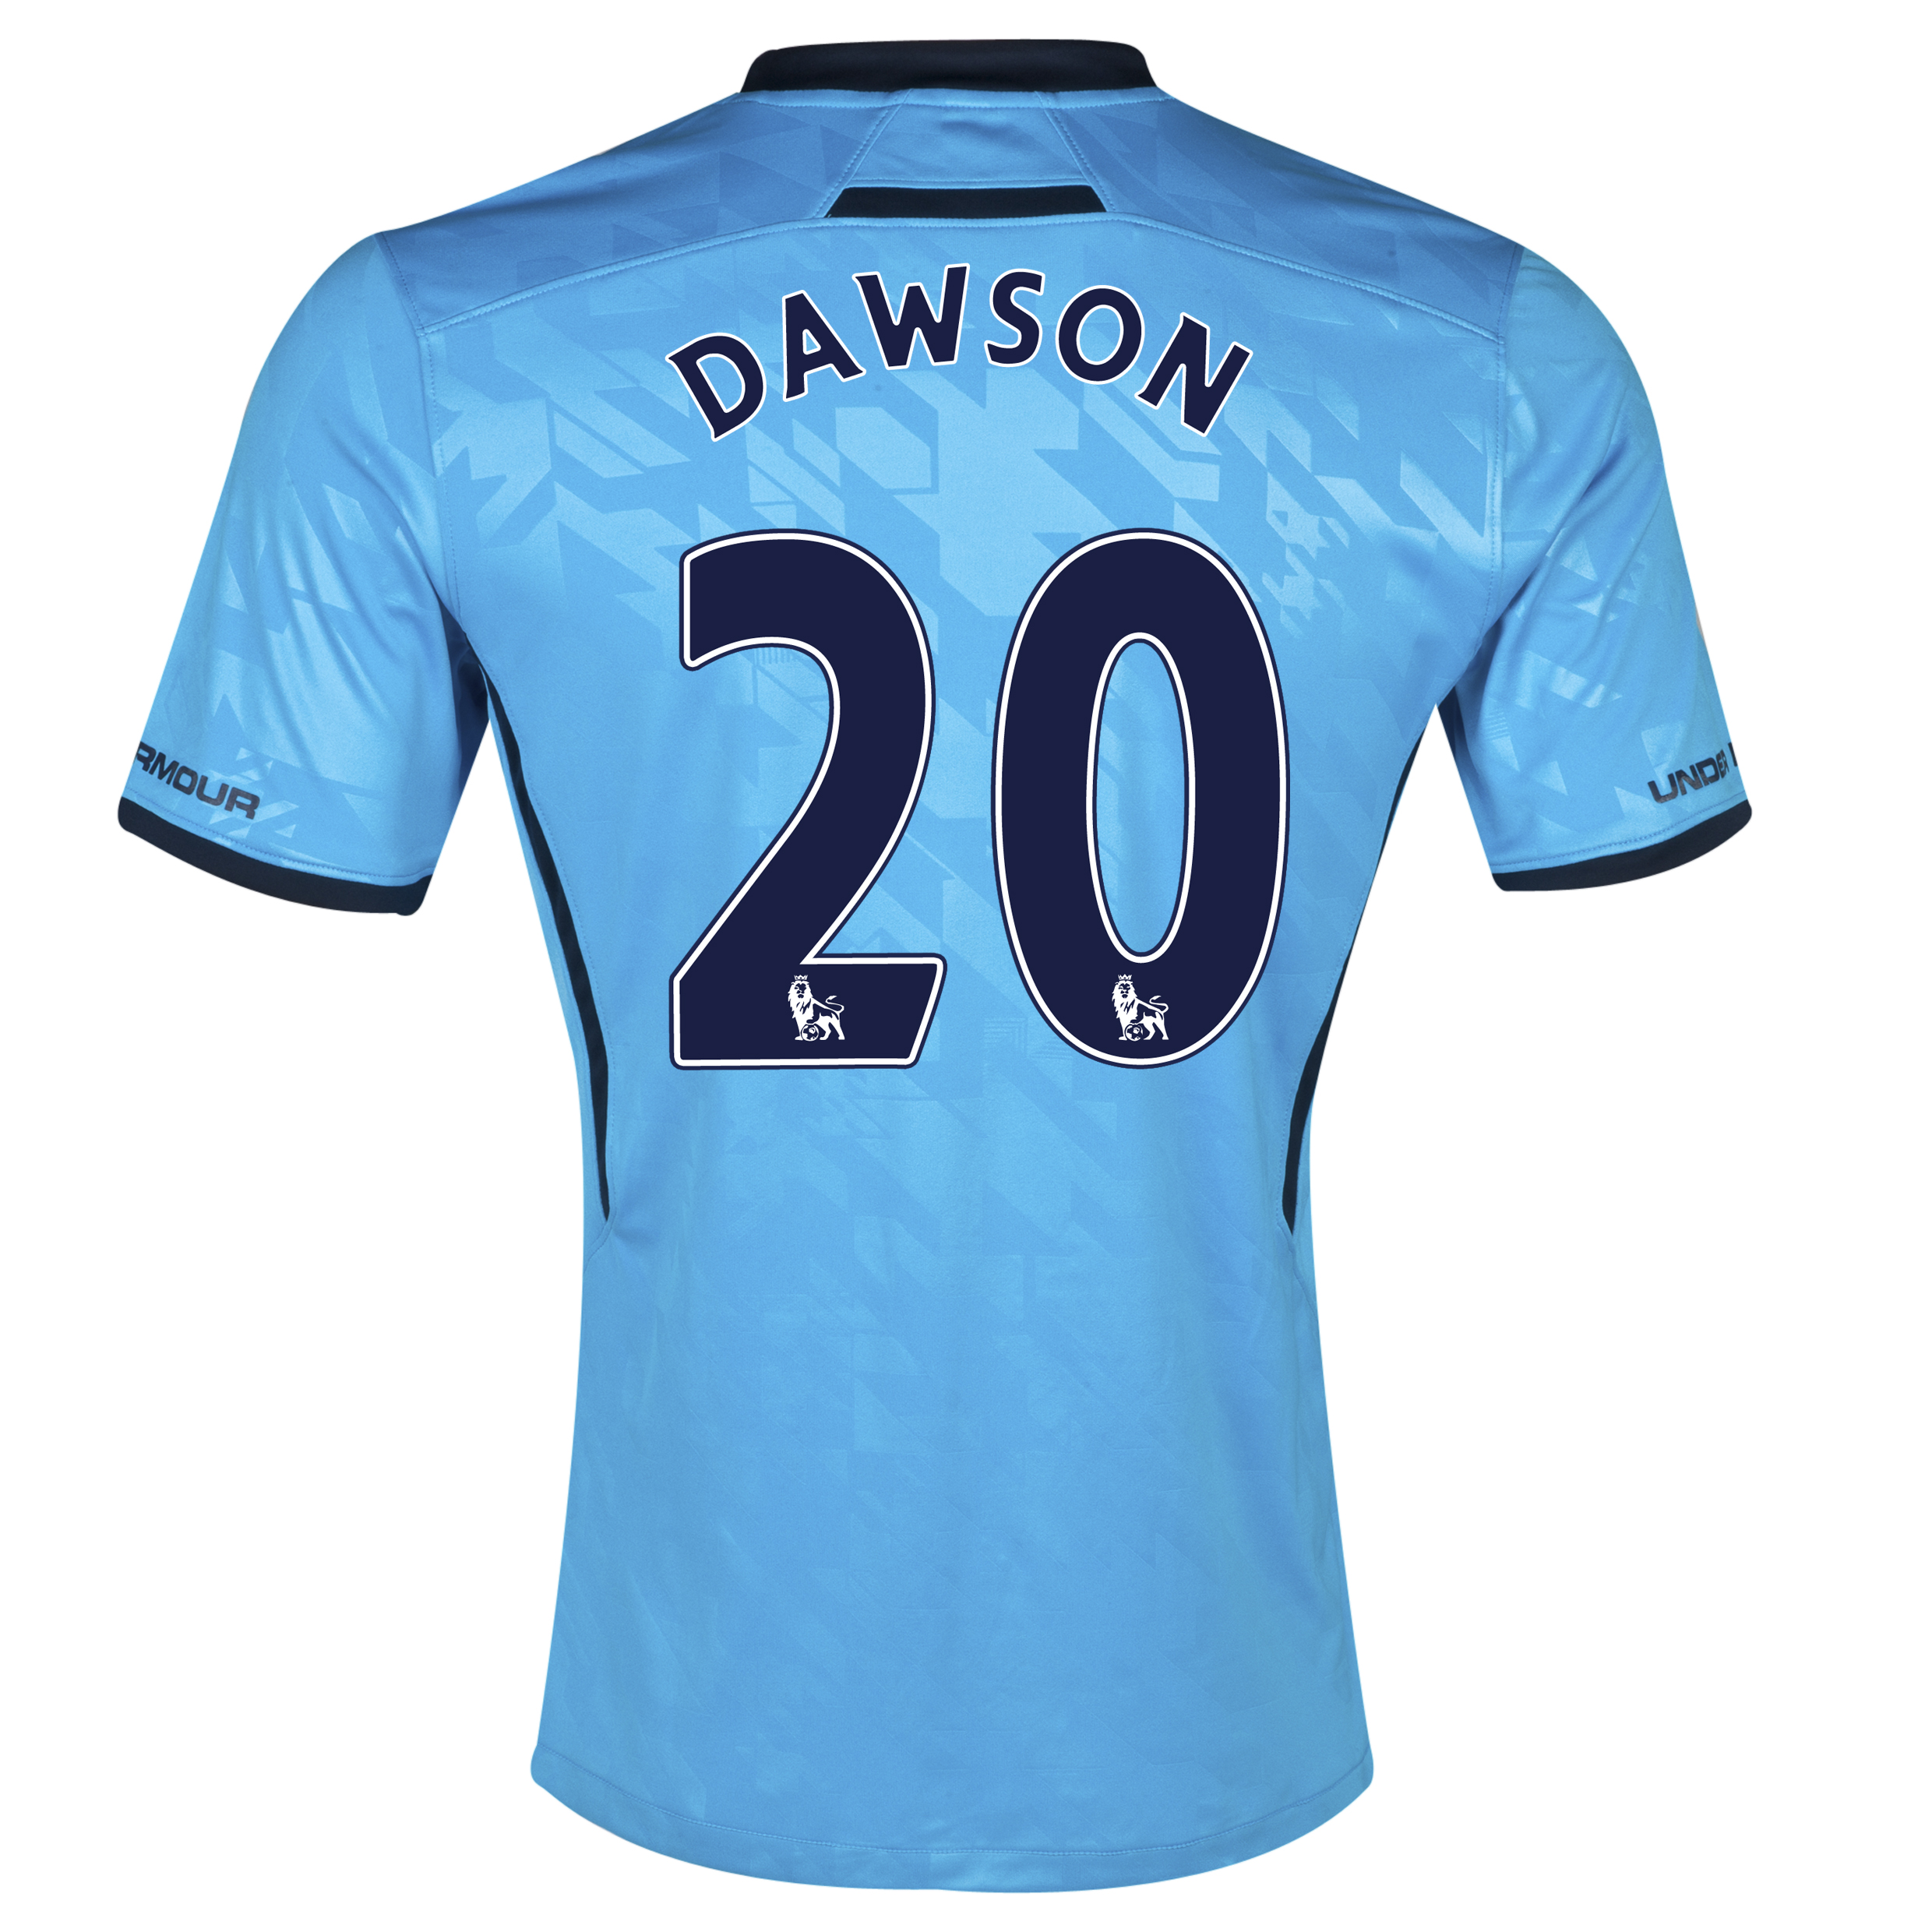 Tottenham Hotspur Away Shirt 2013/14 with Dawson 20 printing